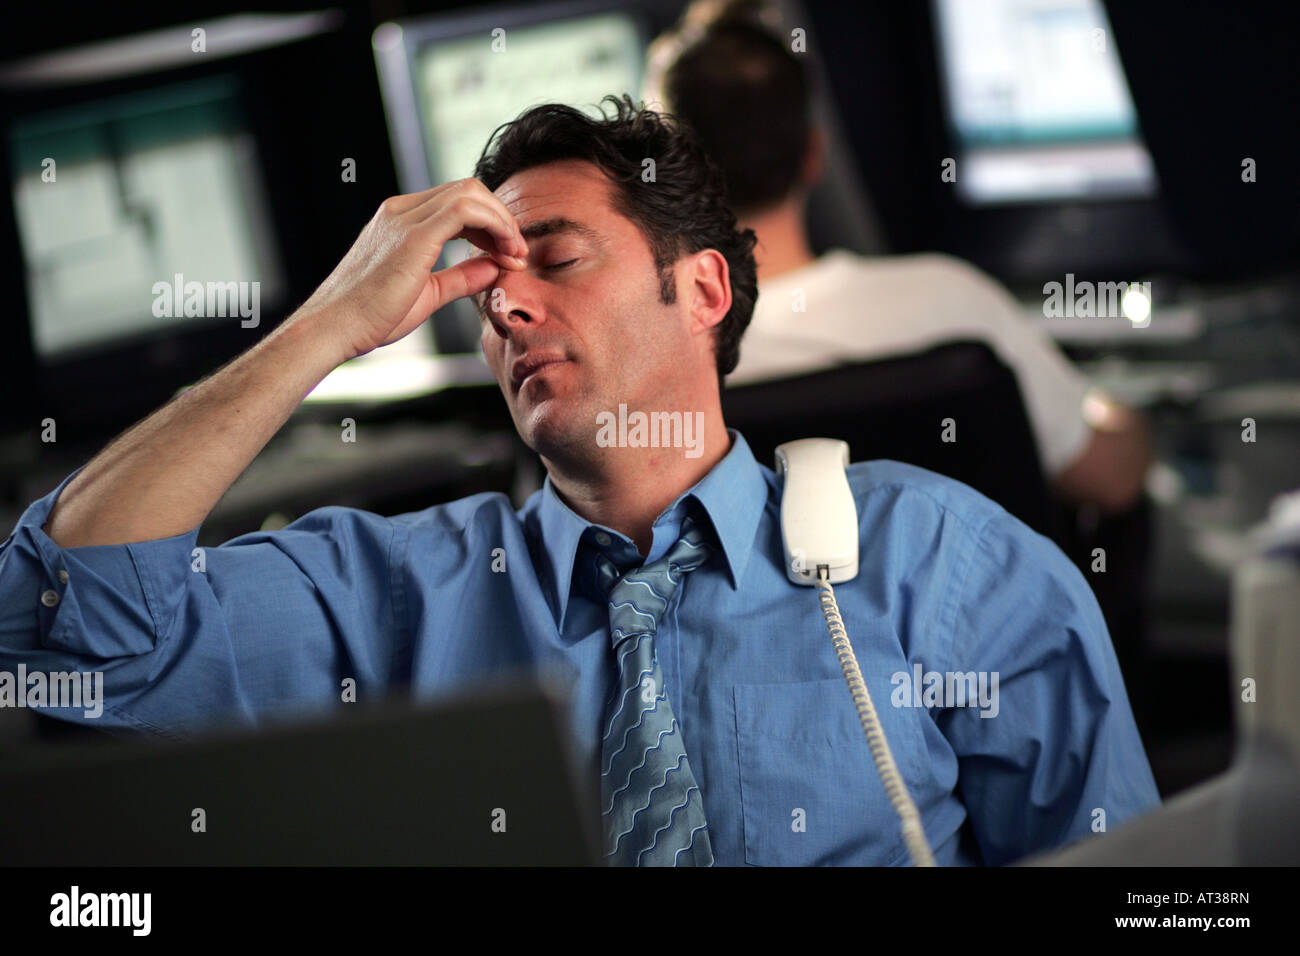 A business man with a phone rested on his shoulder, tired - Stock Image